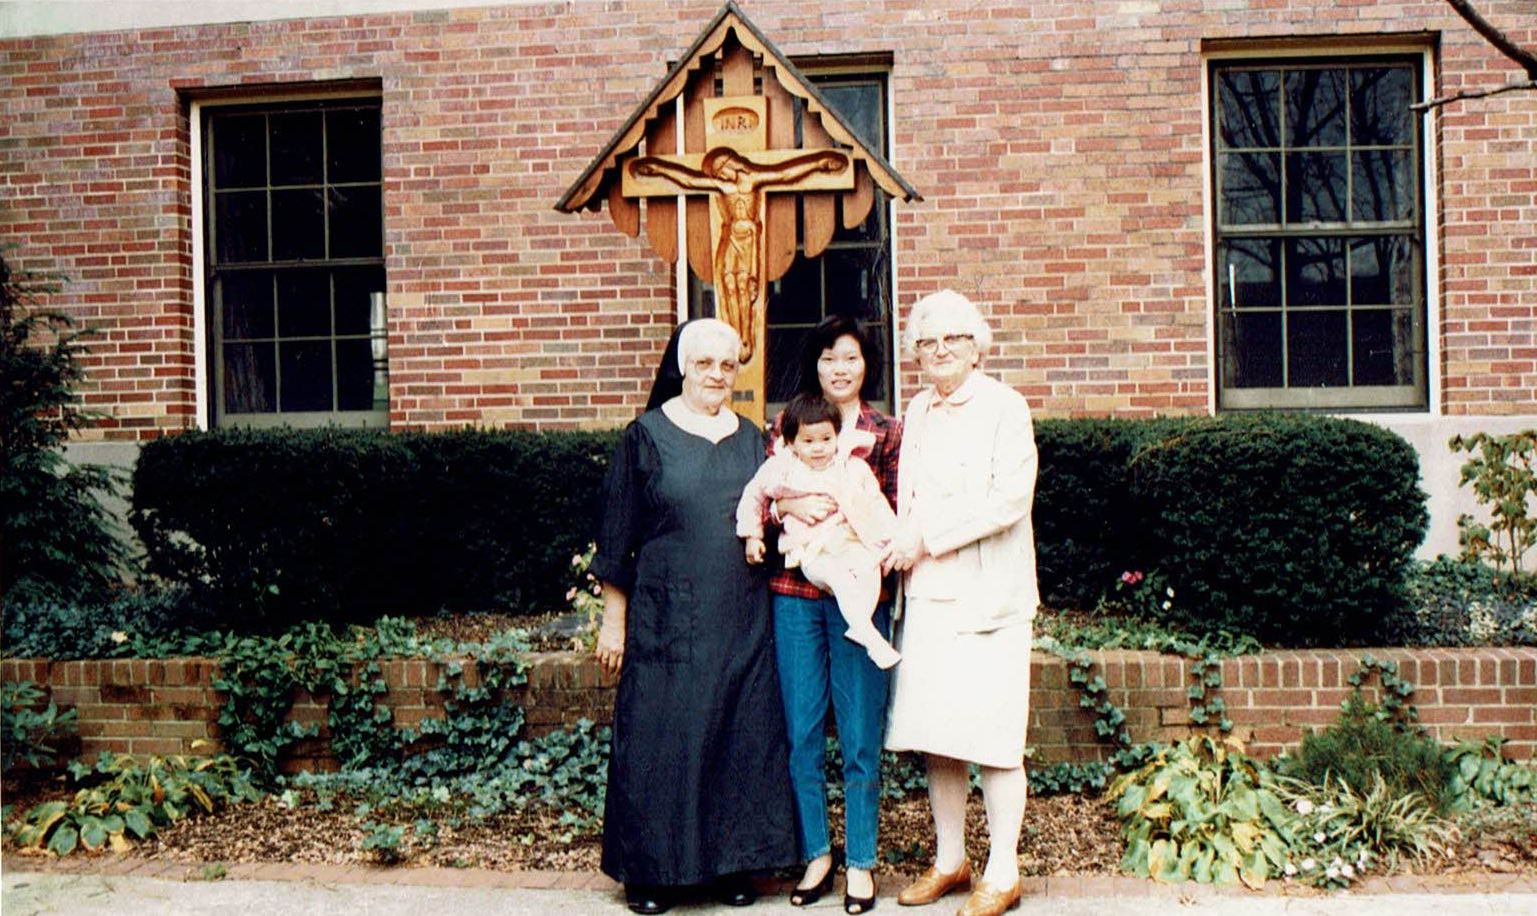 Theresa Vu and daughter Thanh with Benedictine Sisters Sr. Thomas (left in black habit) and Sr. Silvester, in the courtyard of St. Walburg Monastery in Villa Hills.